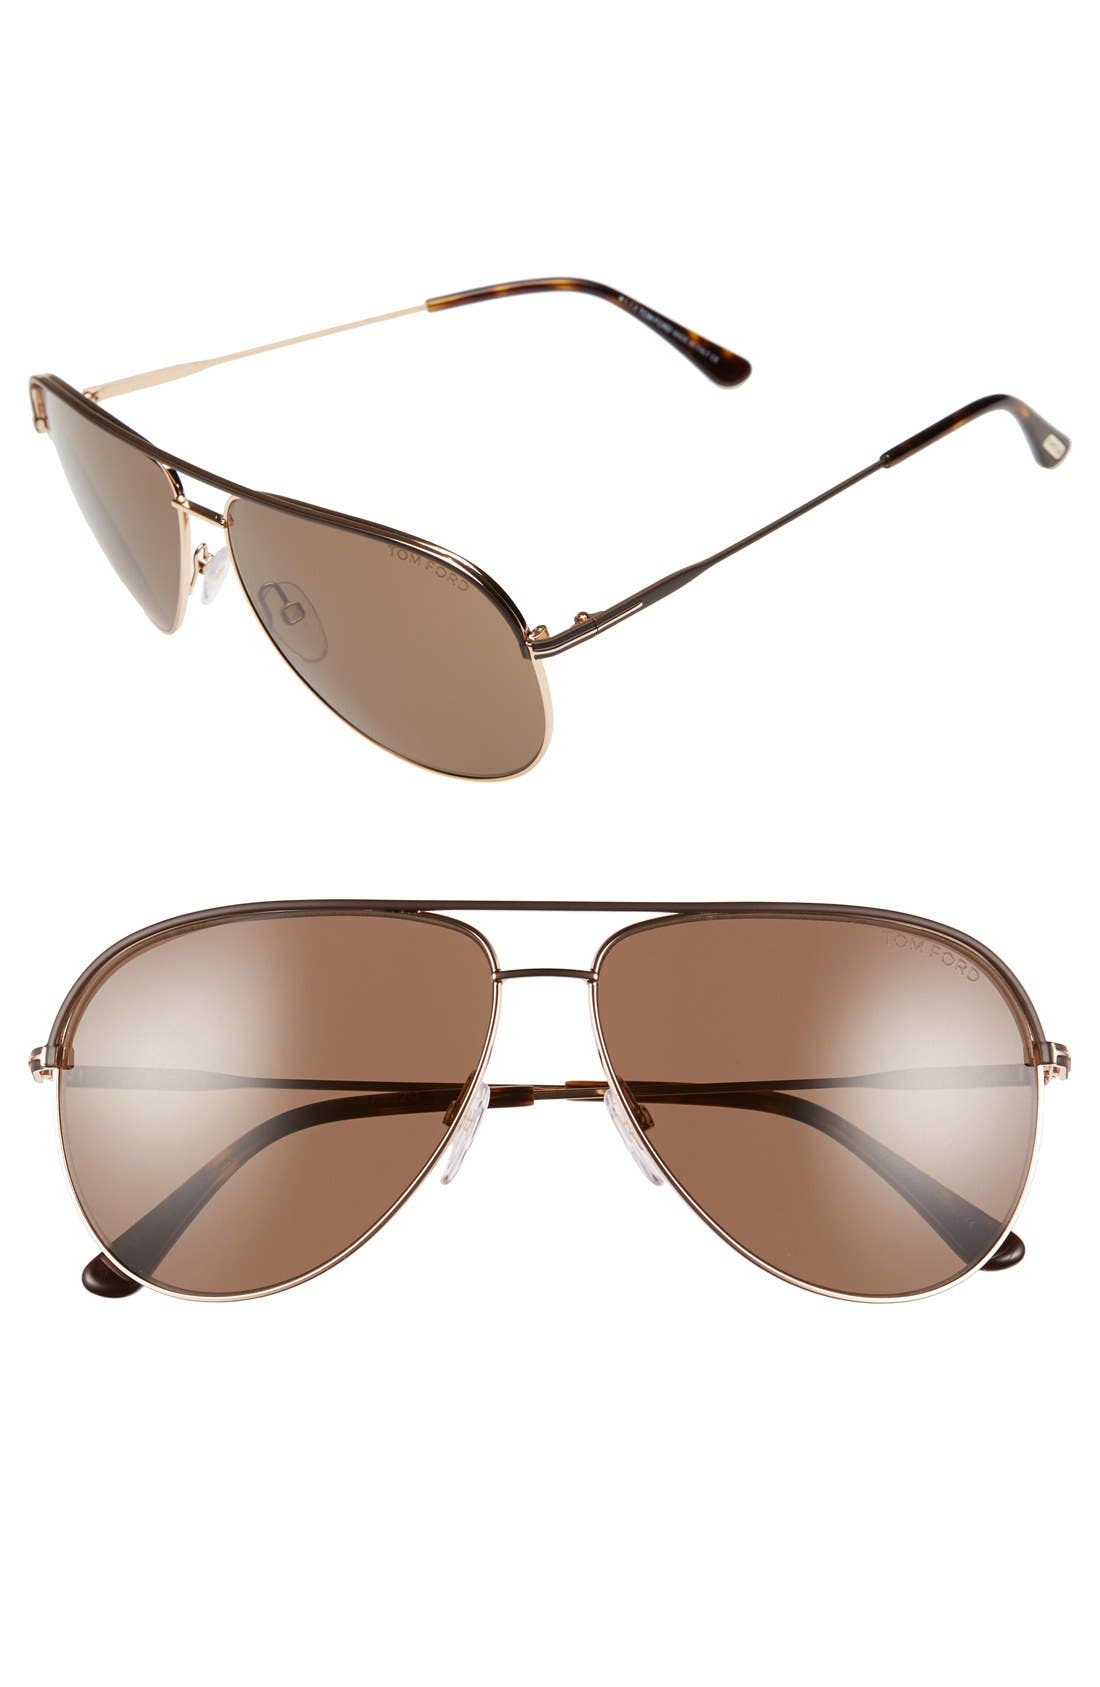 Main Image - Tom Ford 'Erin' 61mm Aviator Sunglasses